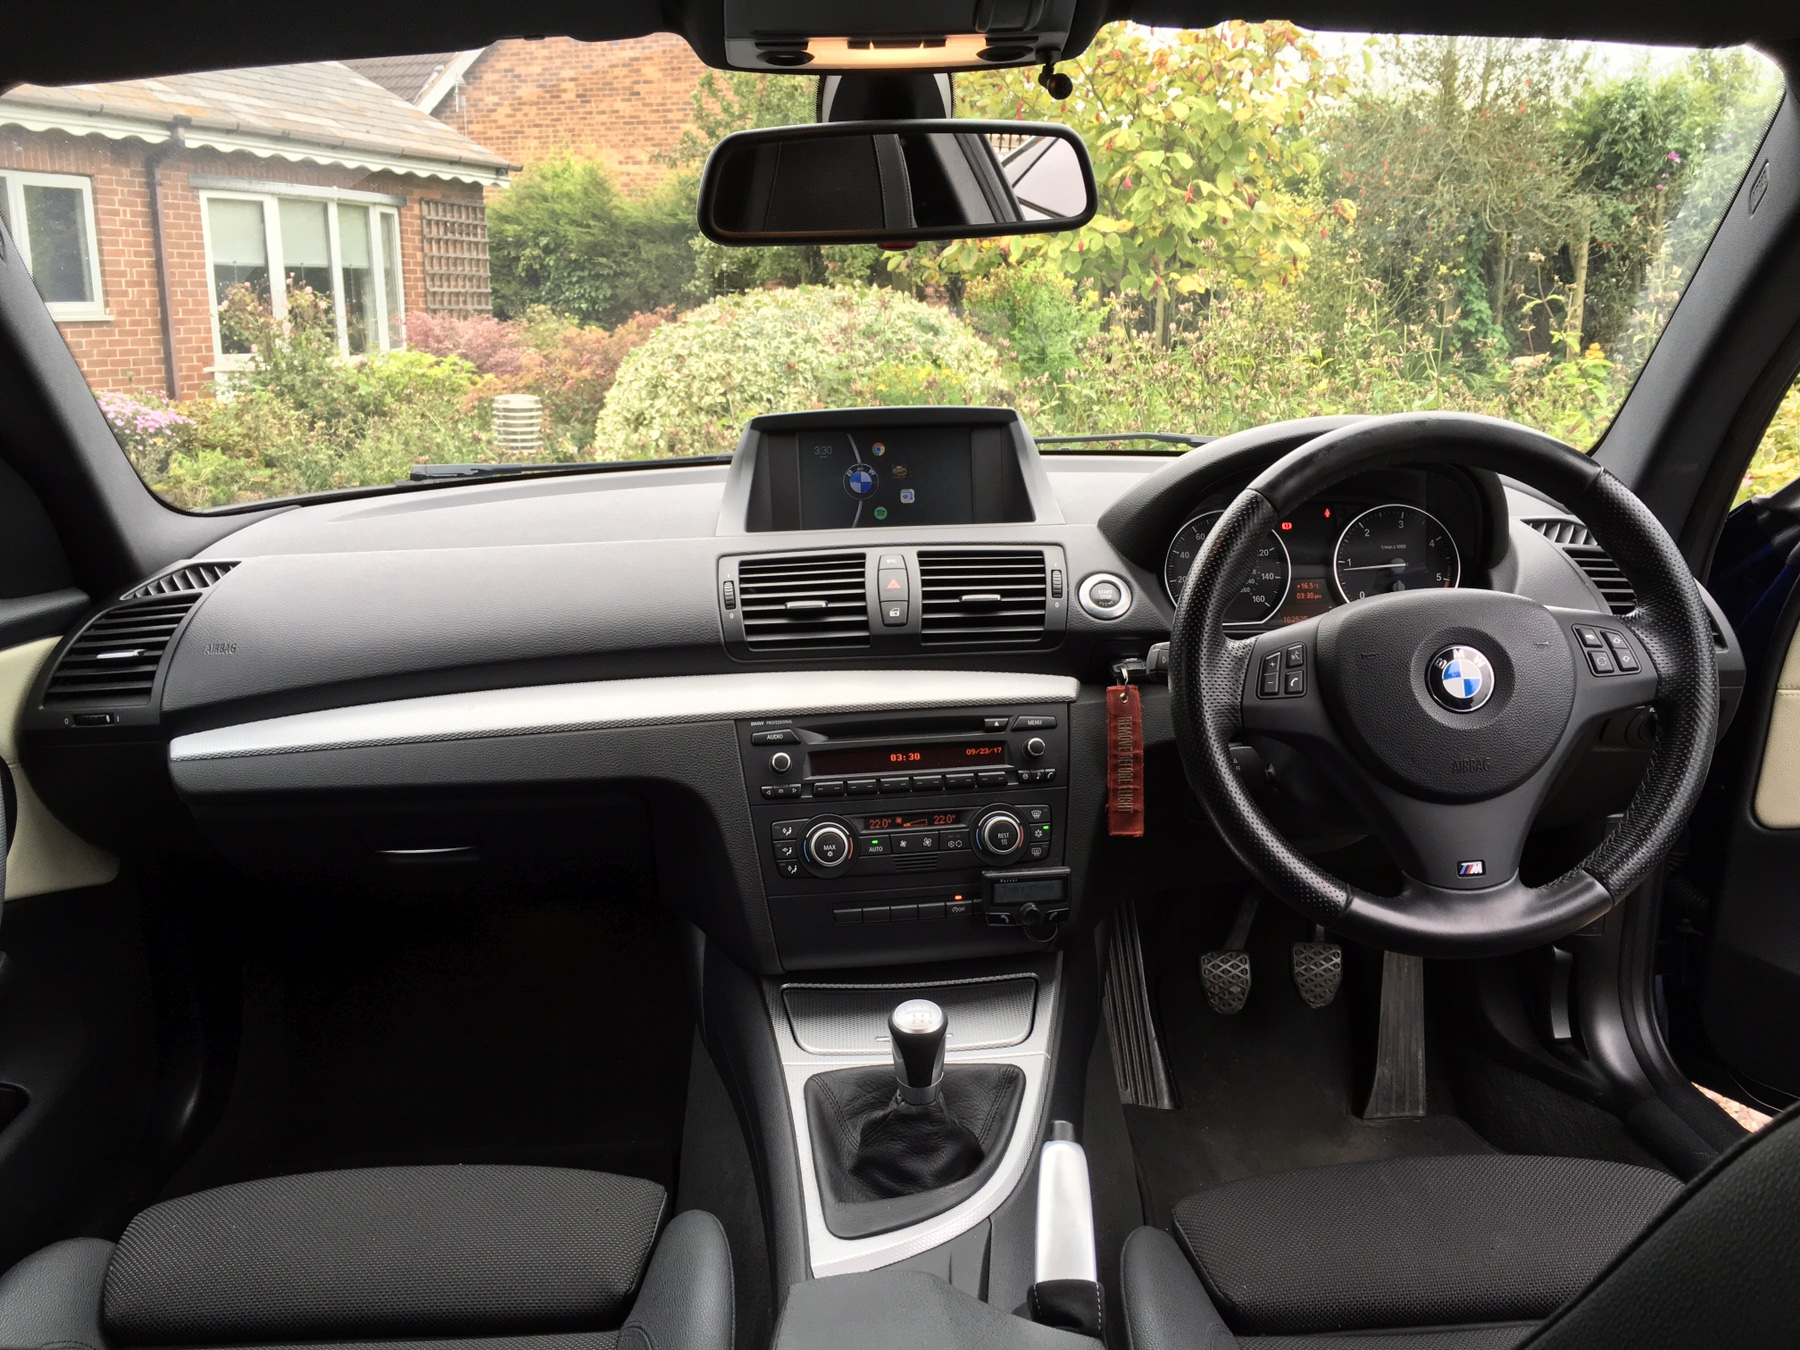 bmw e82 123d m sport with performance goodies sold. Black Bedroom Furniture Sets. Home Design Ideas